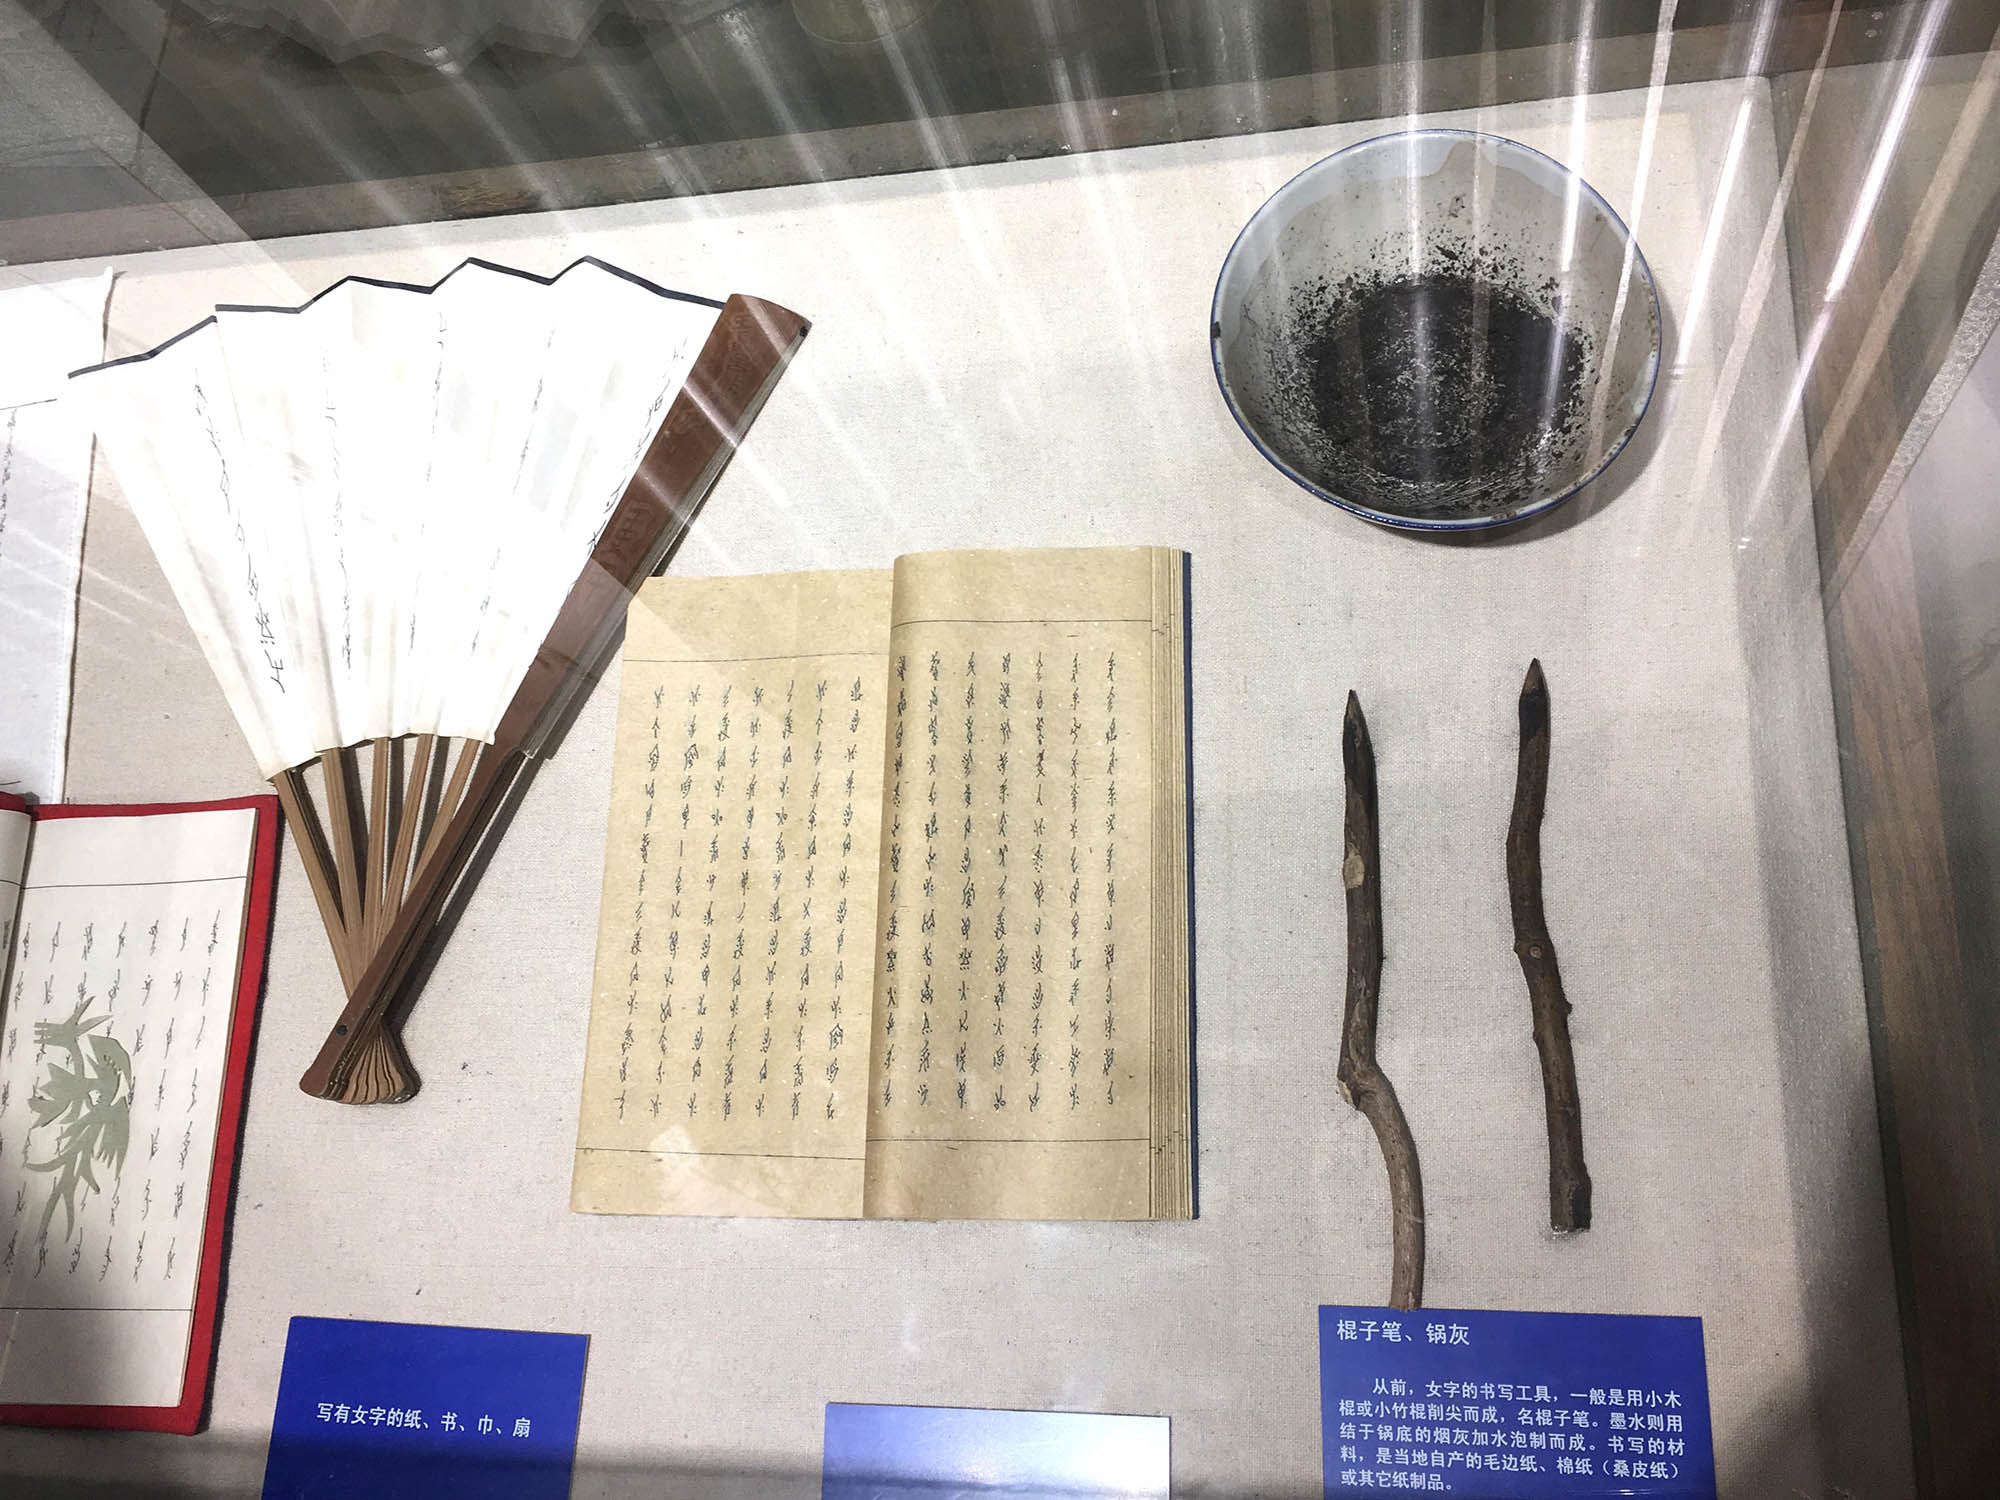 Nüshu writing tools: wood sticks, paper, wok pan ash and fan